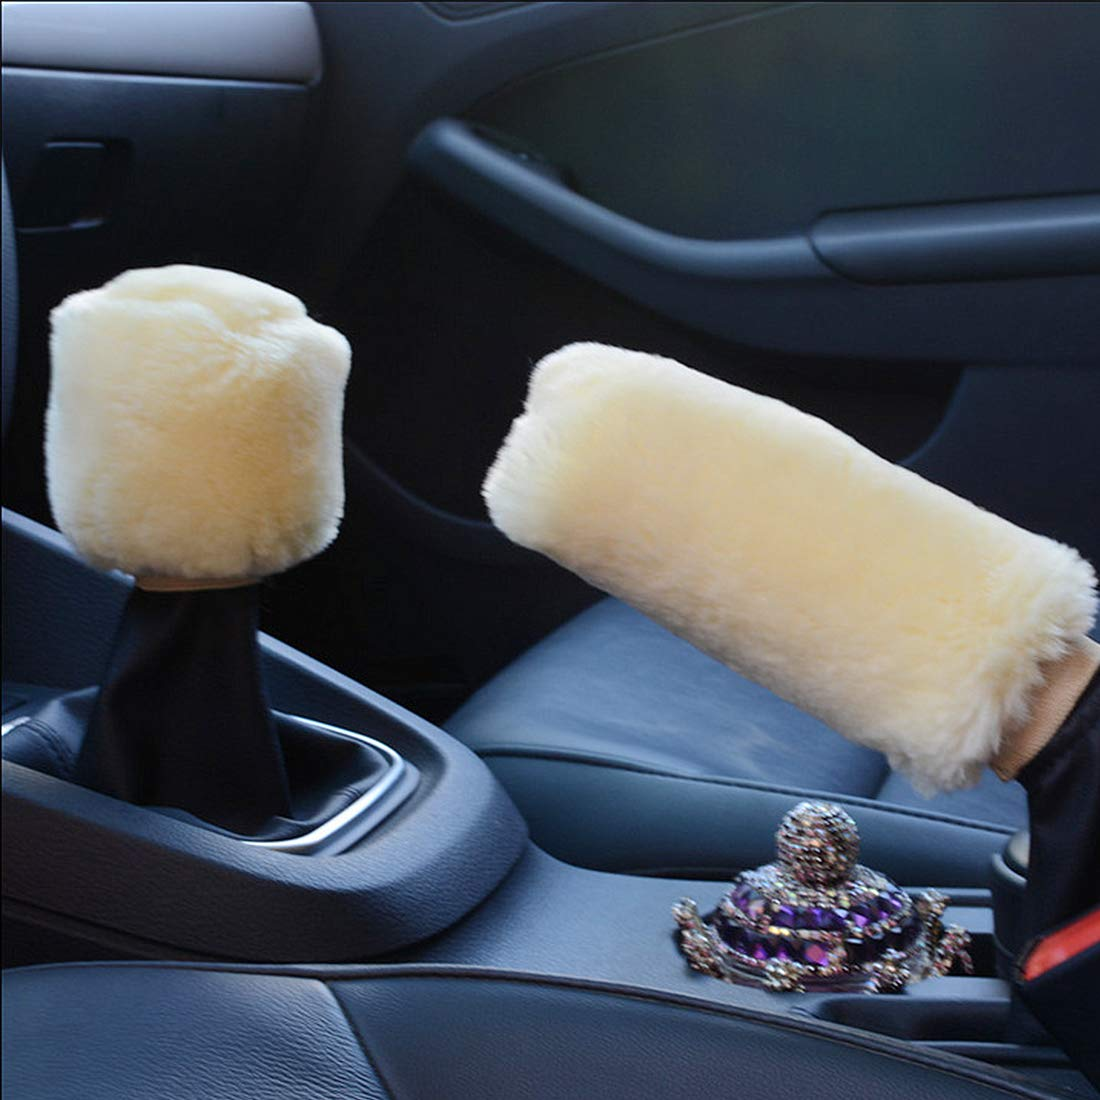 Andux Land Handbrake Cover Non-Slip Car Decoration Steering Wheel Gear Universal Winter Warm Shift Plush Cover FXPT-01 Pink